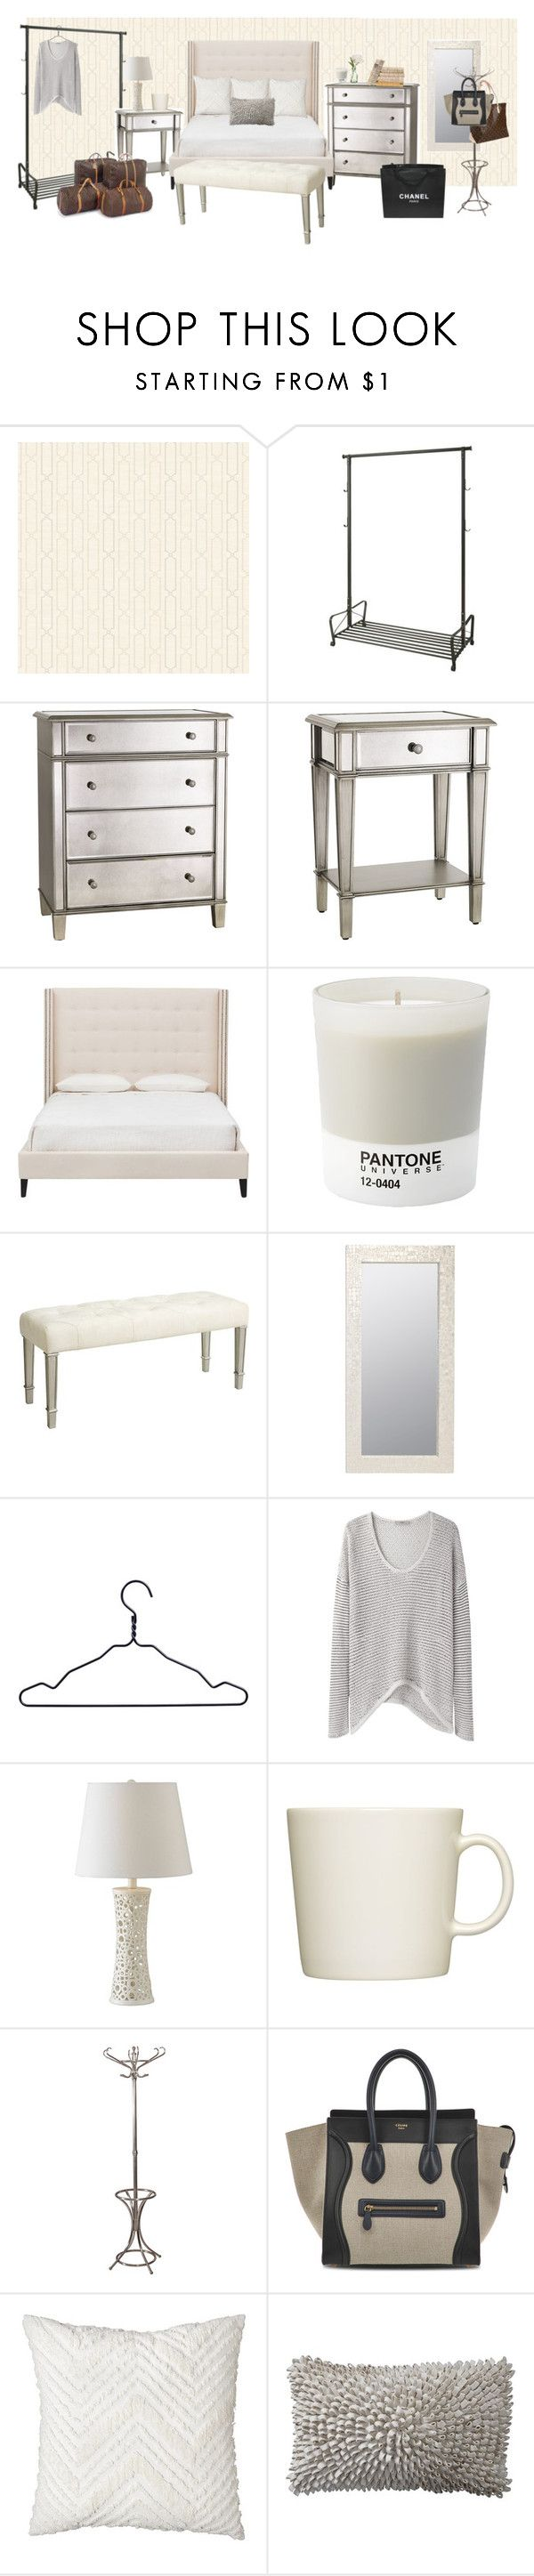 """kendall jenner inspired bedroom"" by hellotia ❤ liked on Polyvore featuring York Wallcoverings, Pier 1 Imports, Pantone, Worlds Away, HAY, PEONY, Chanel, Helmut by Helmut Lang, Kenroy Home and iittala"